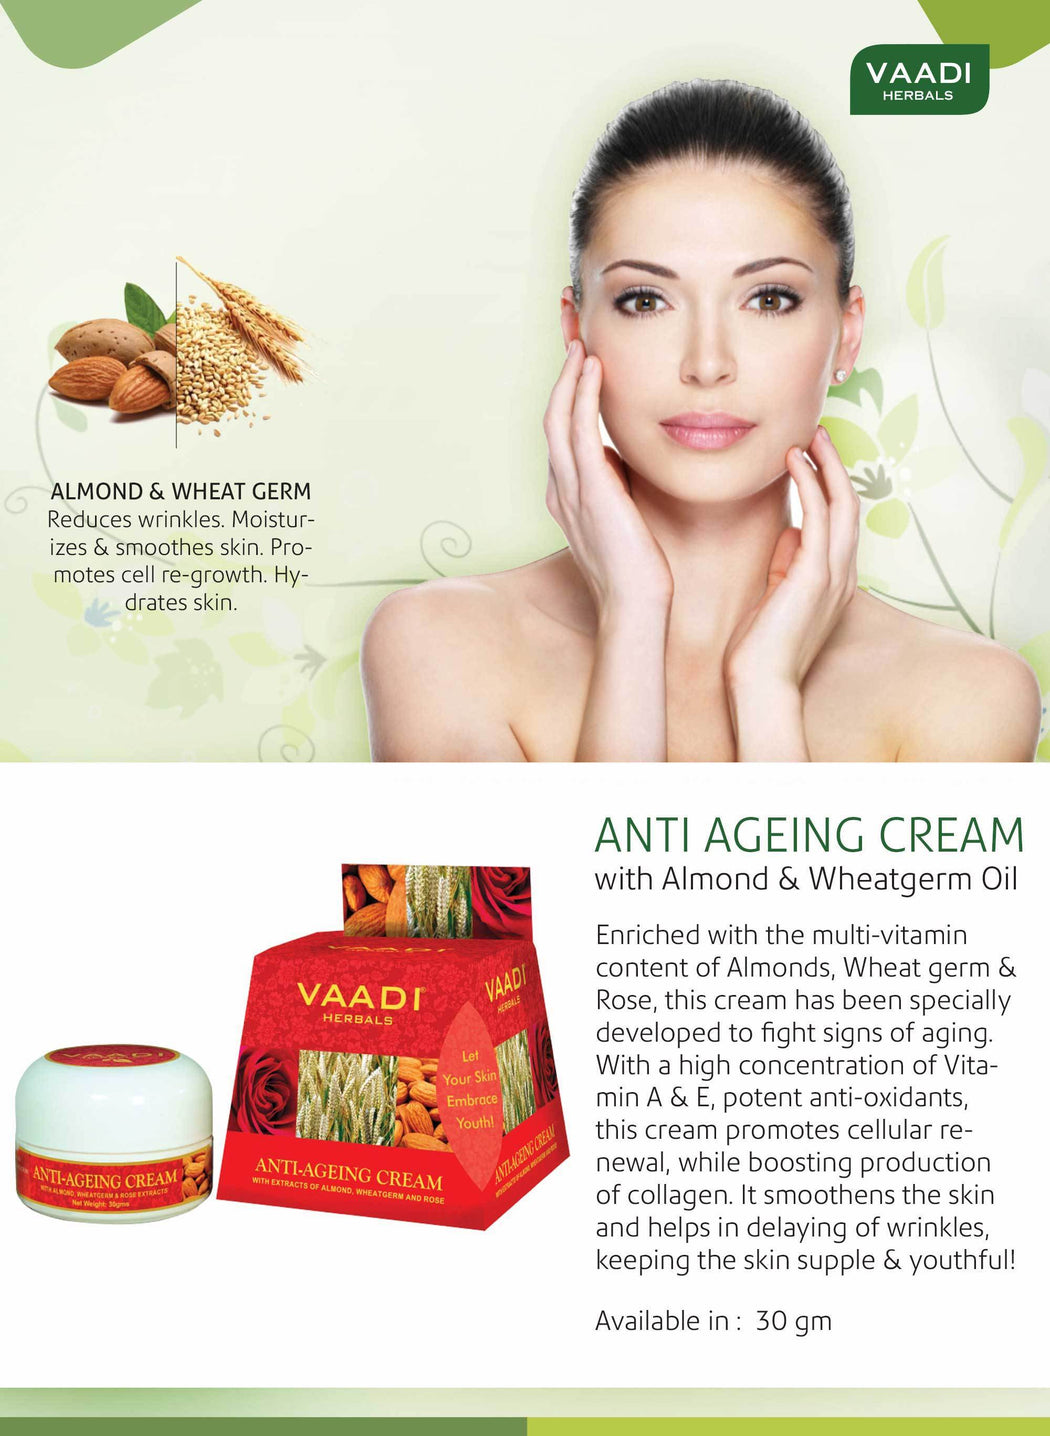 Organic Anti Ageing Cream with Almond, Wheatgerm - Boosts Collagen & Delays Wrinkles - Keeps Skin Soft & Youthful ( 30 gms / 1.1 oz)